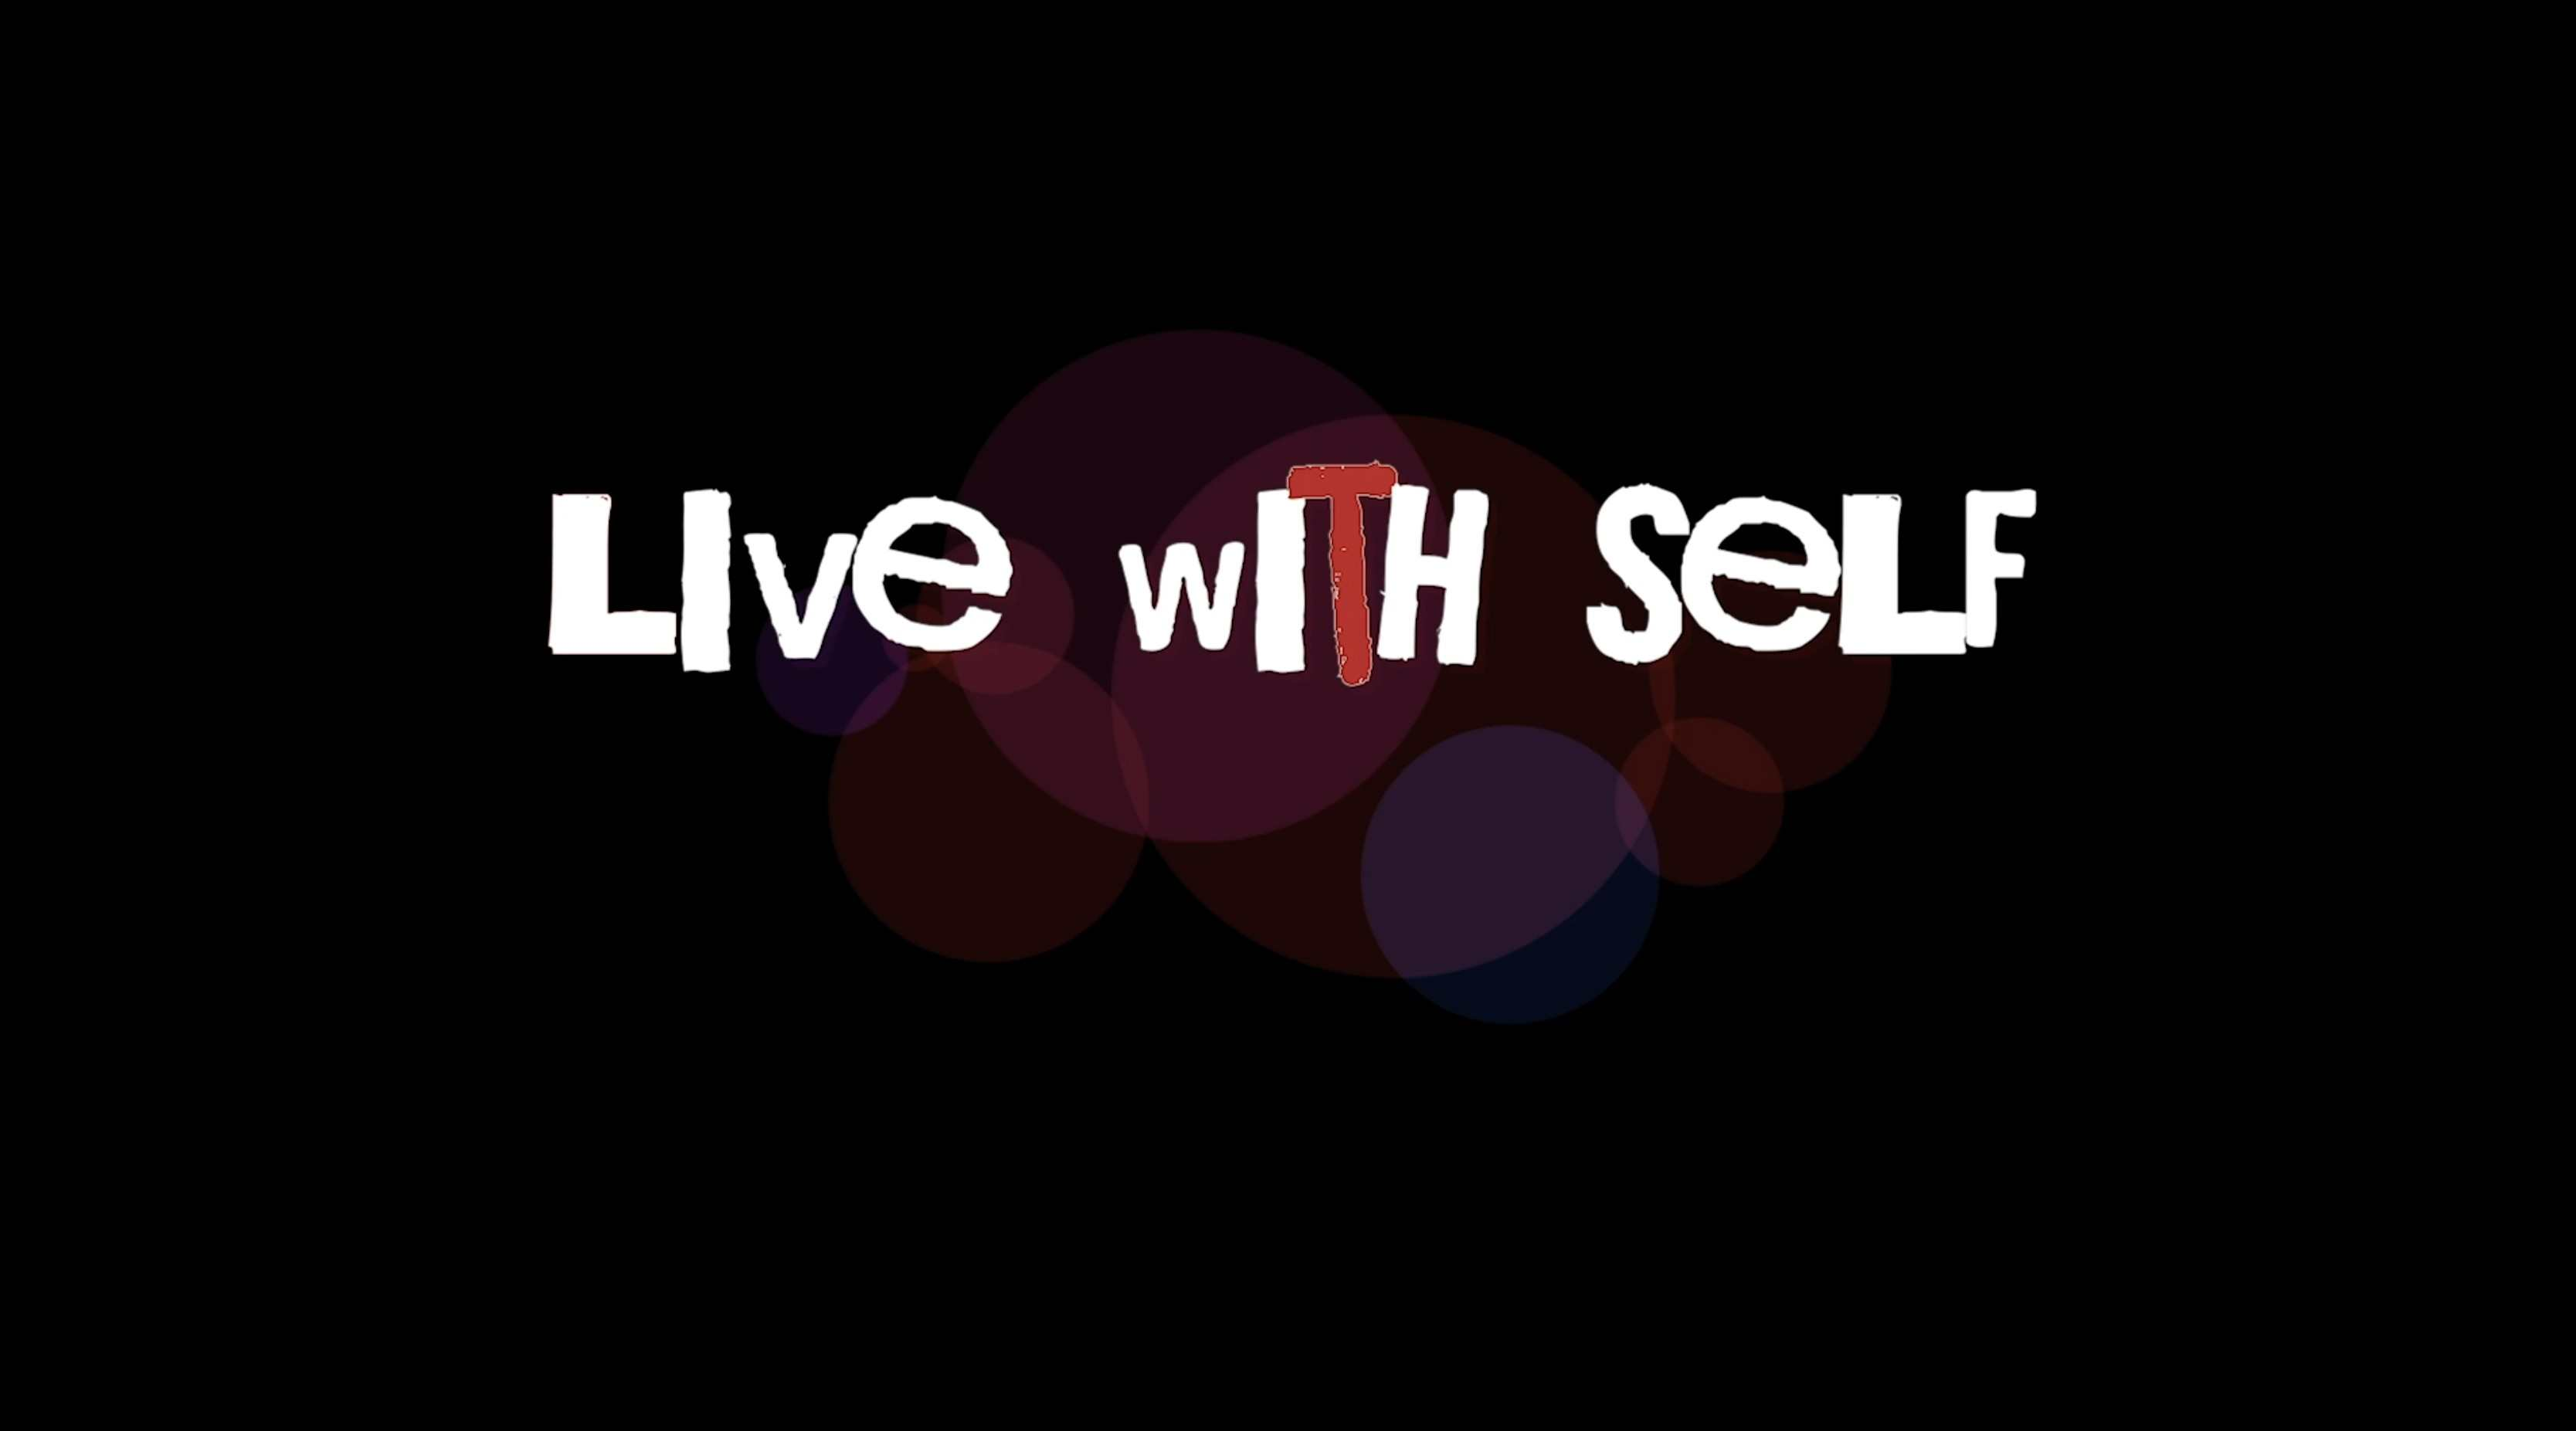 Live with Self